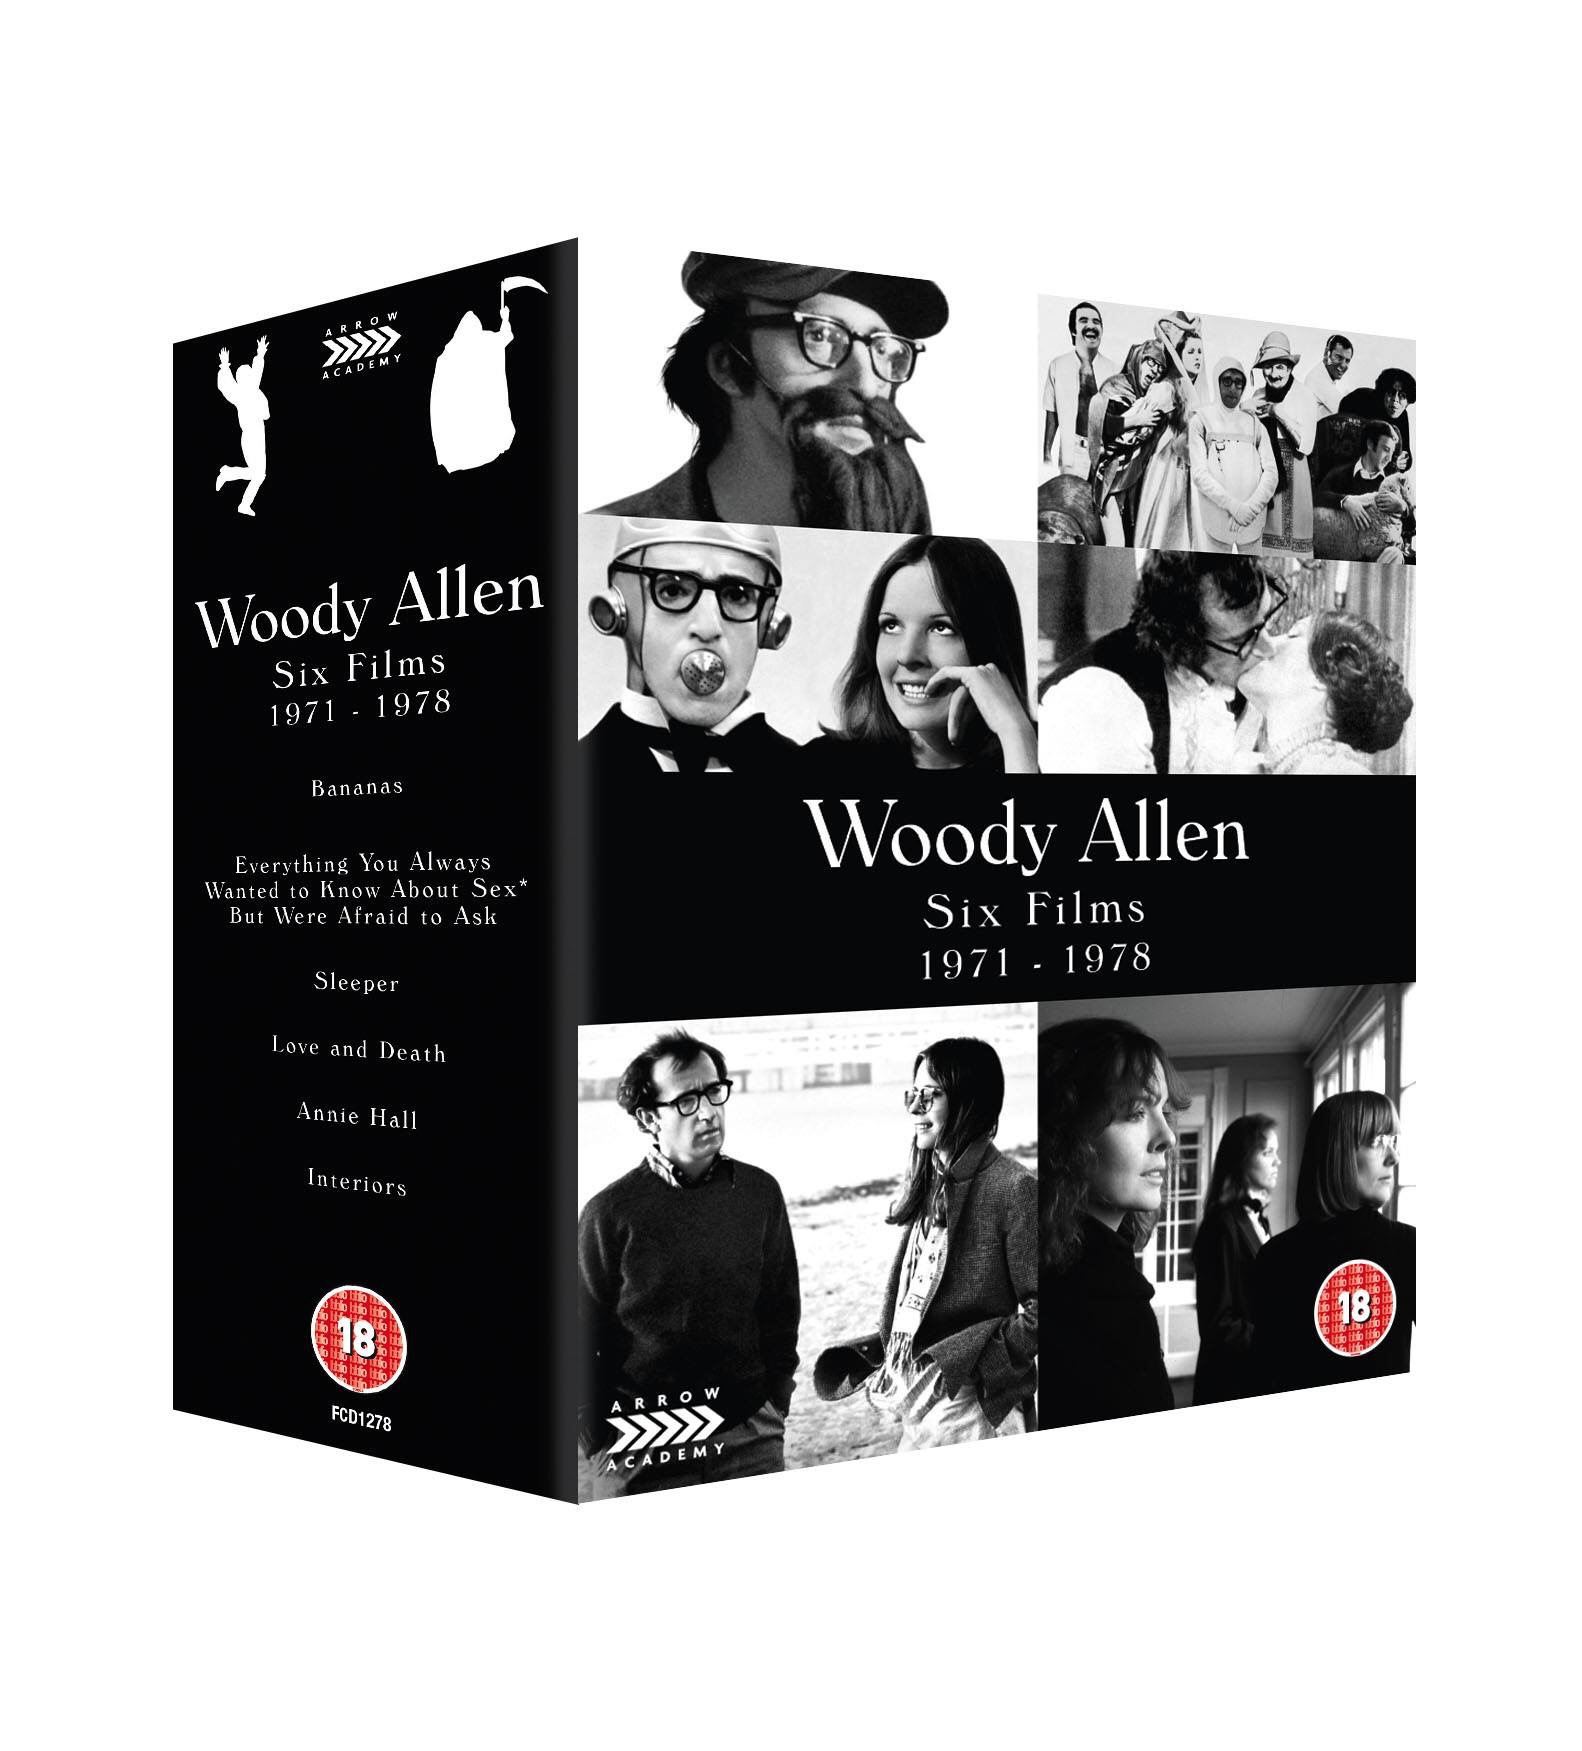 bananas news stories the woody allen pages uk blu ray distributor arrow have announced the release of a new woody allen box set the first box covers six of allen s films from the 70s